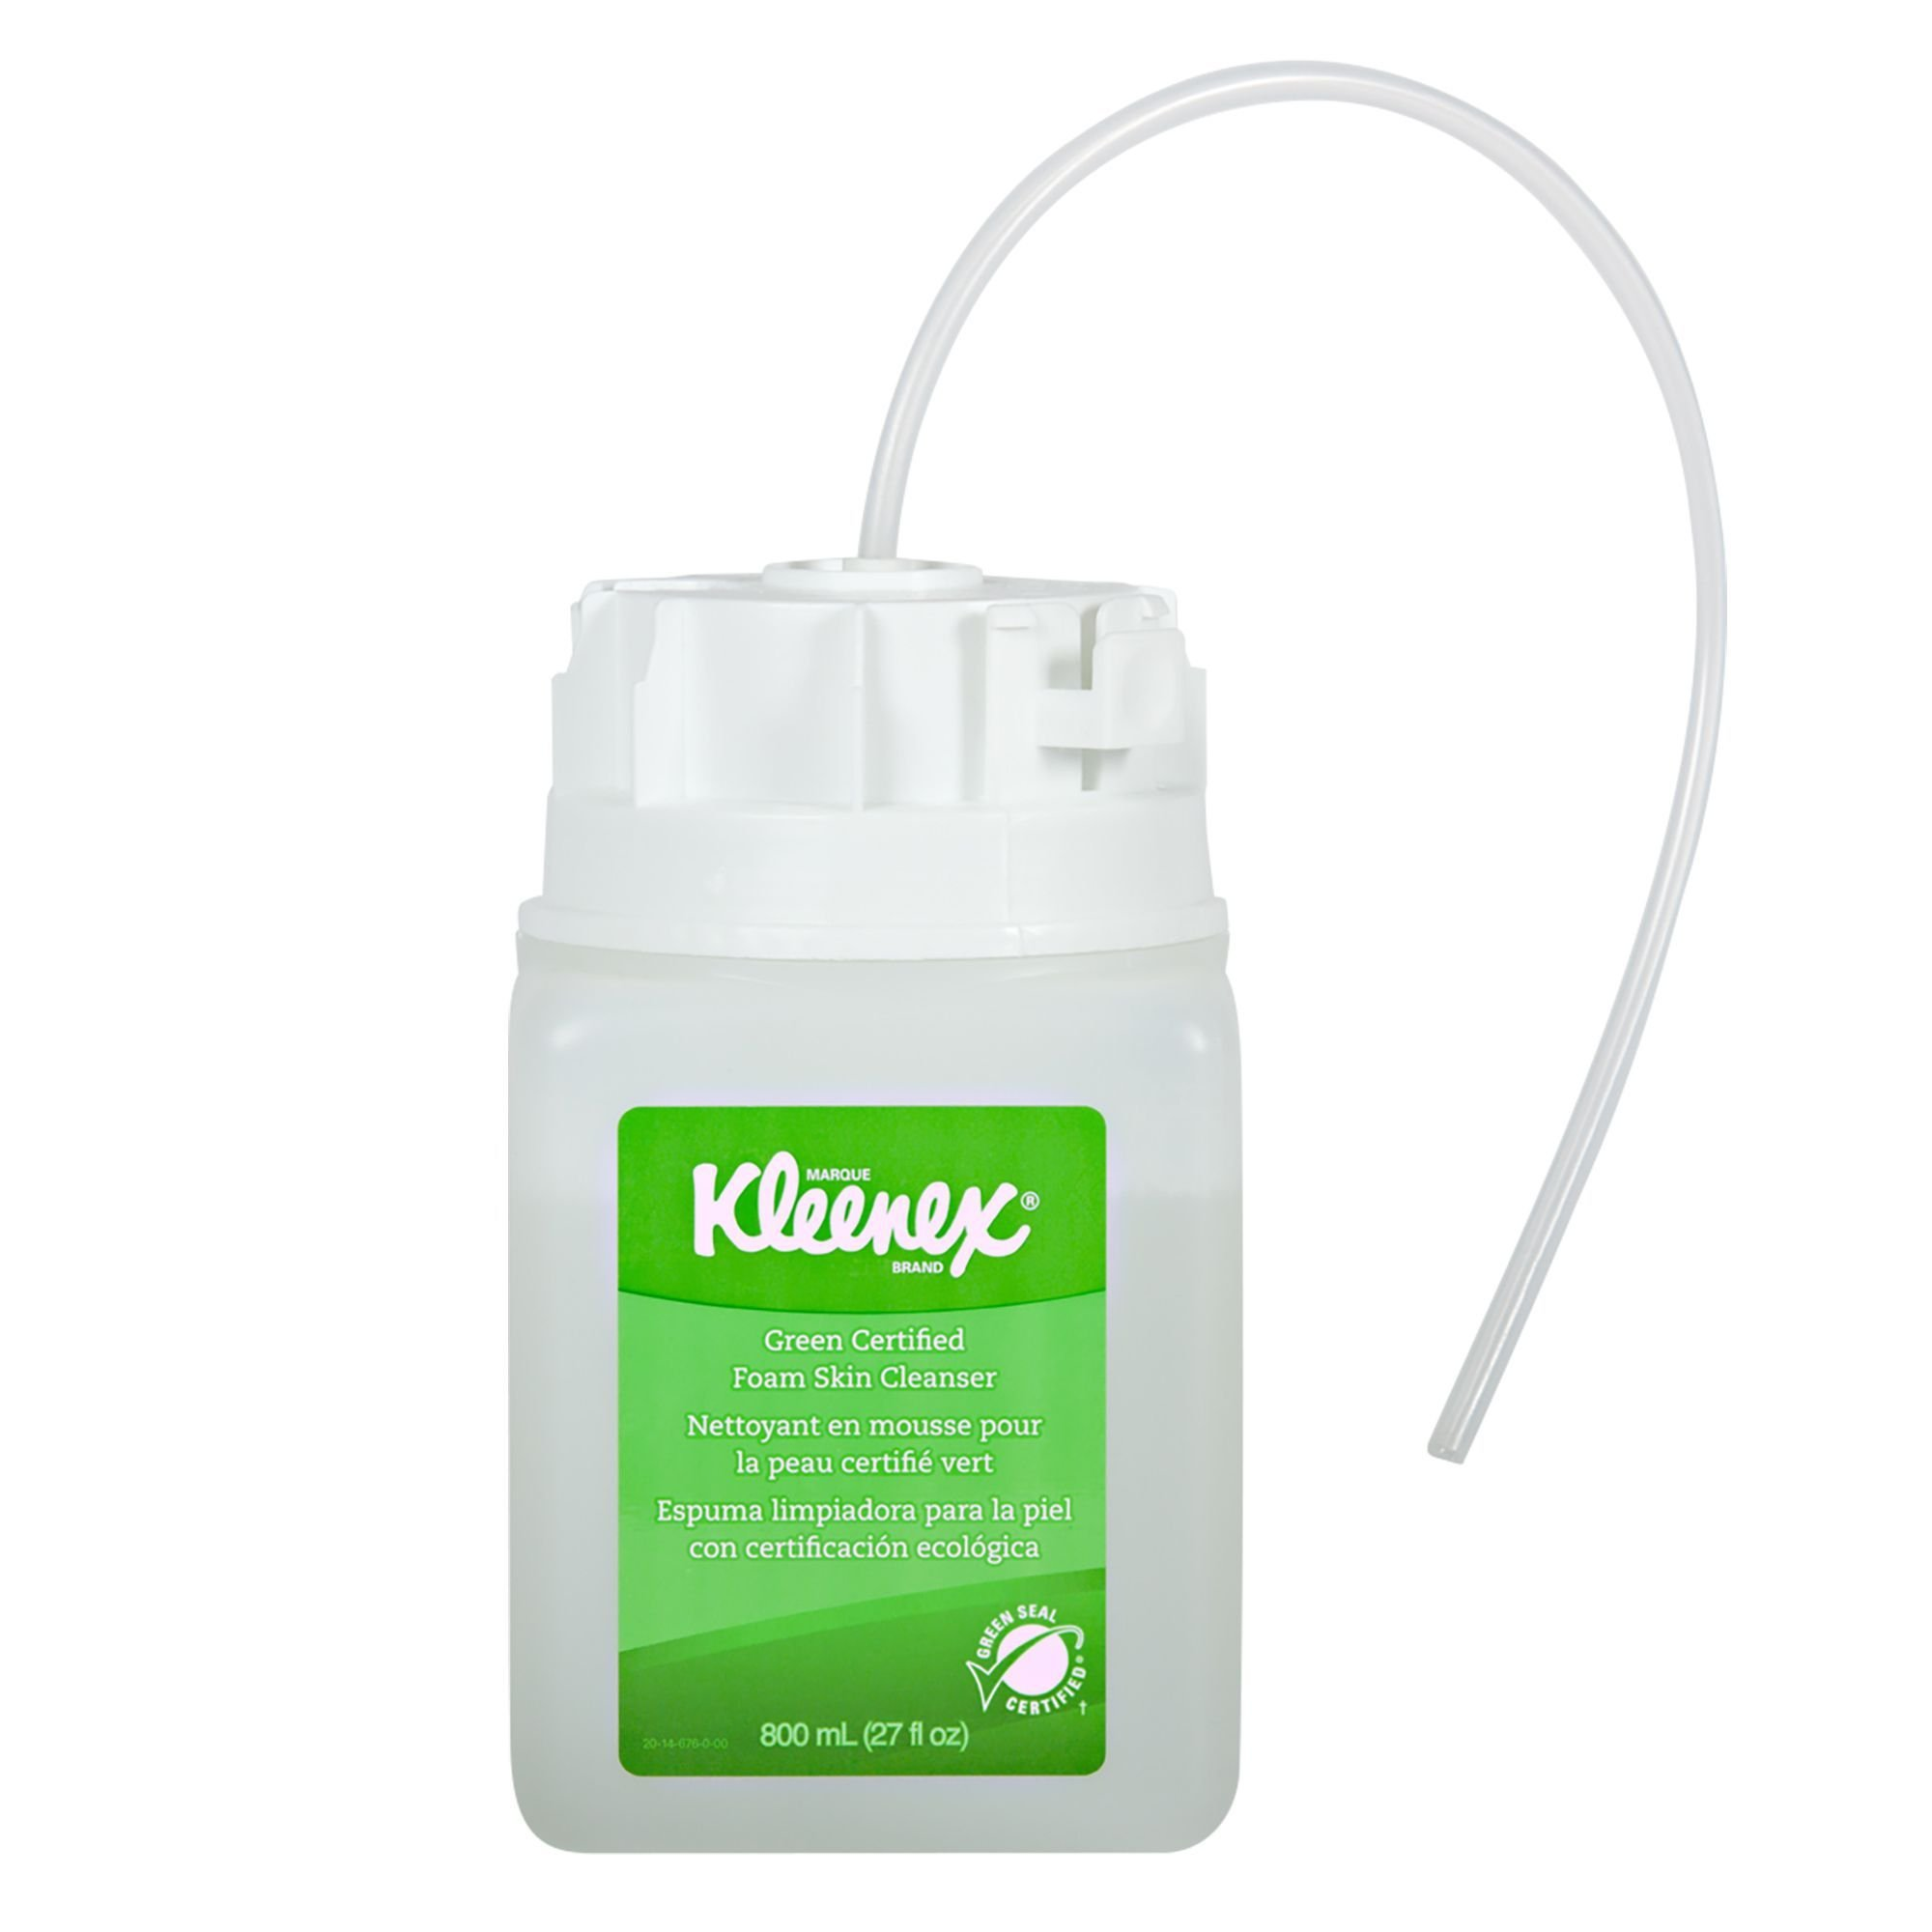 Kleenex 35042 Green Certified  Foaming Hand Soap (35042), Unscented, Clear, 800 mL Under-Counter Bottles, 4 Units / Case